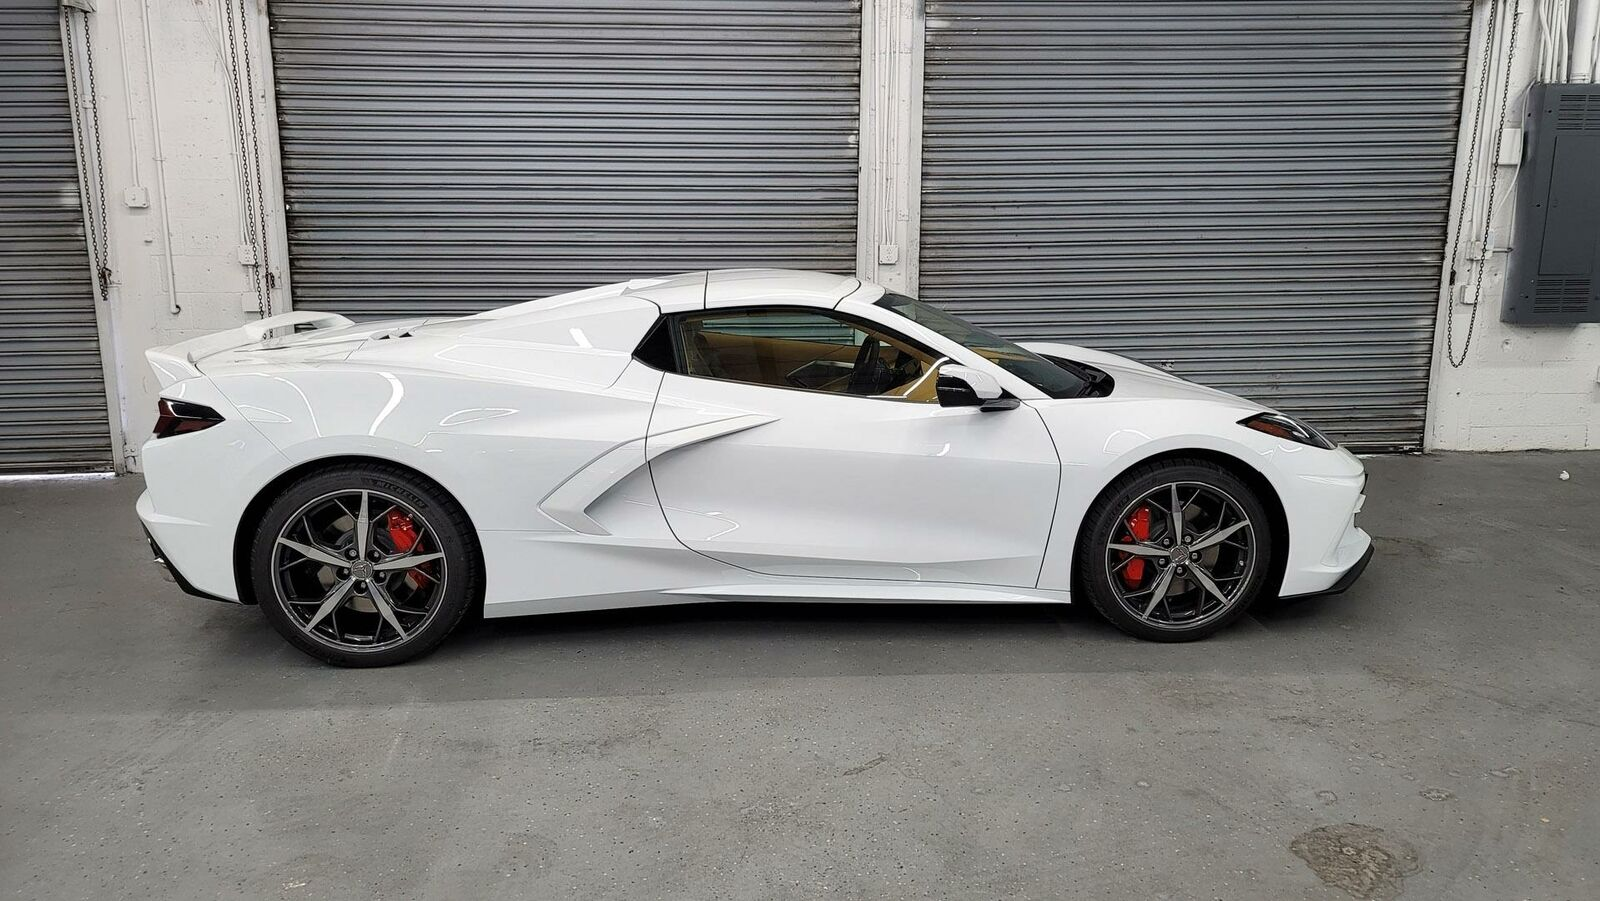 2021 White Chevrolet Corvette  3LT | C7 Corvette Photo 8